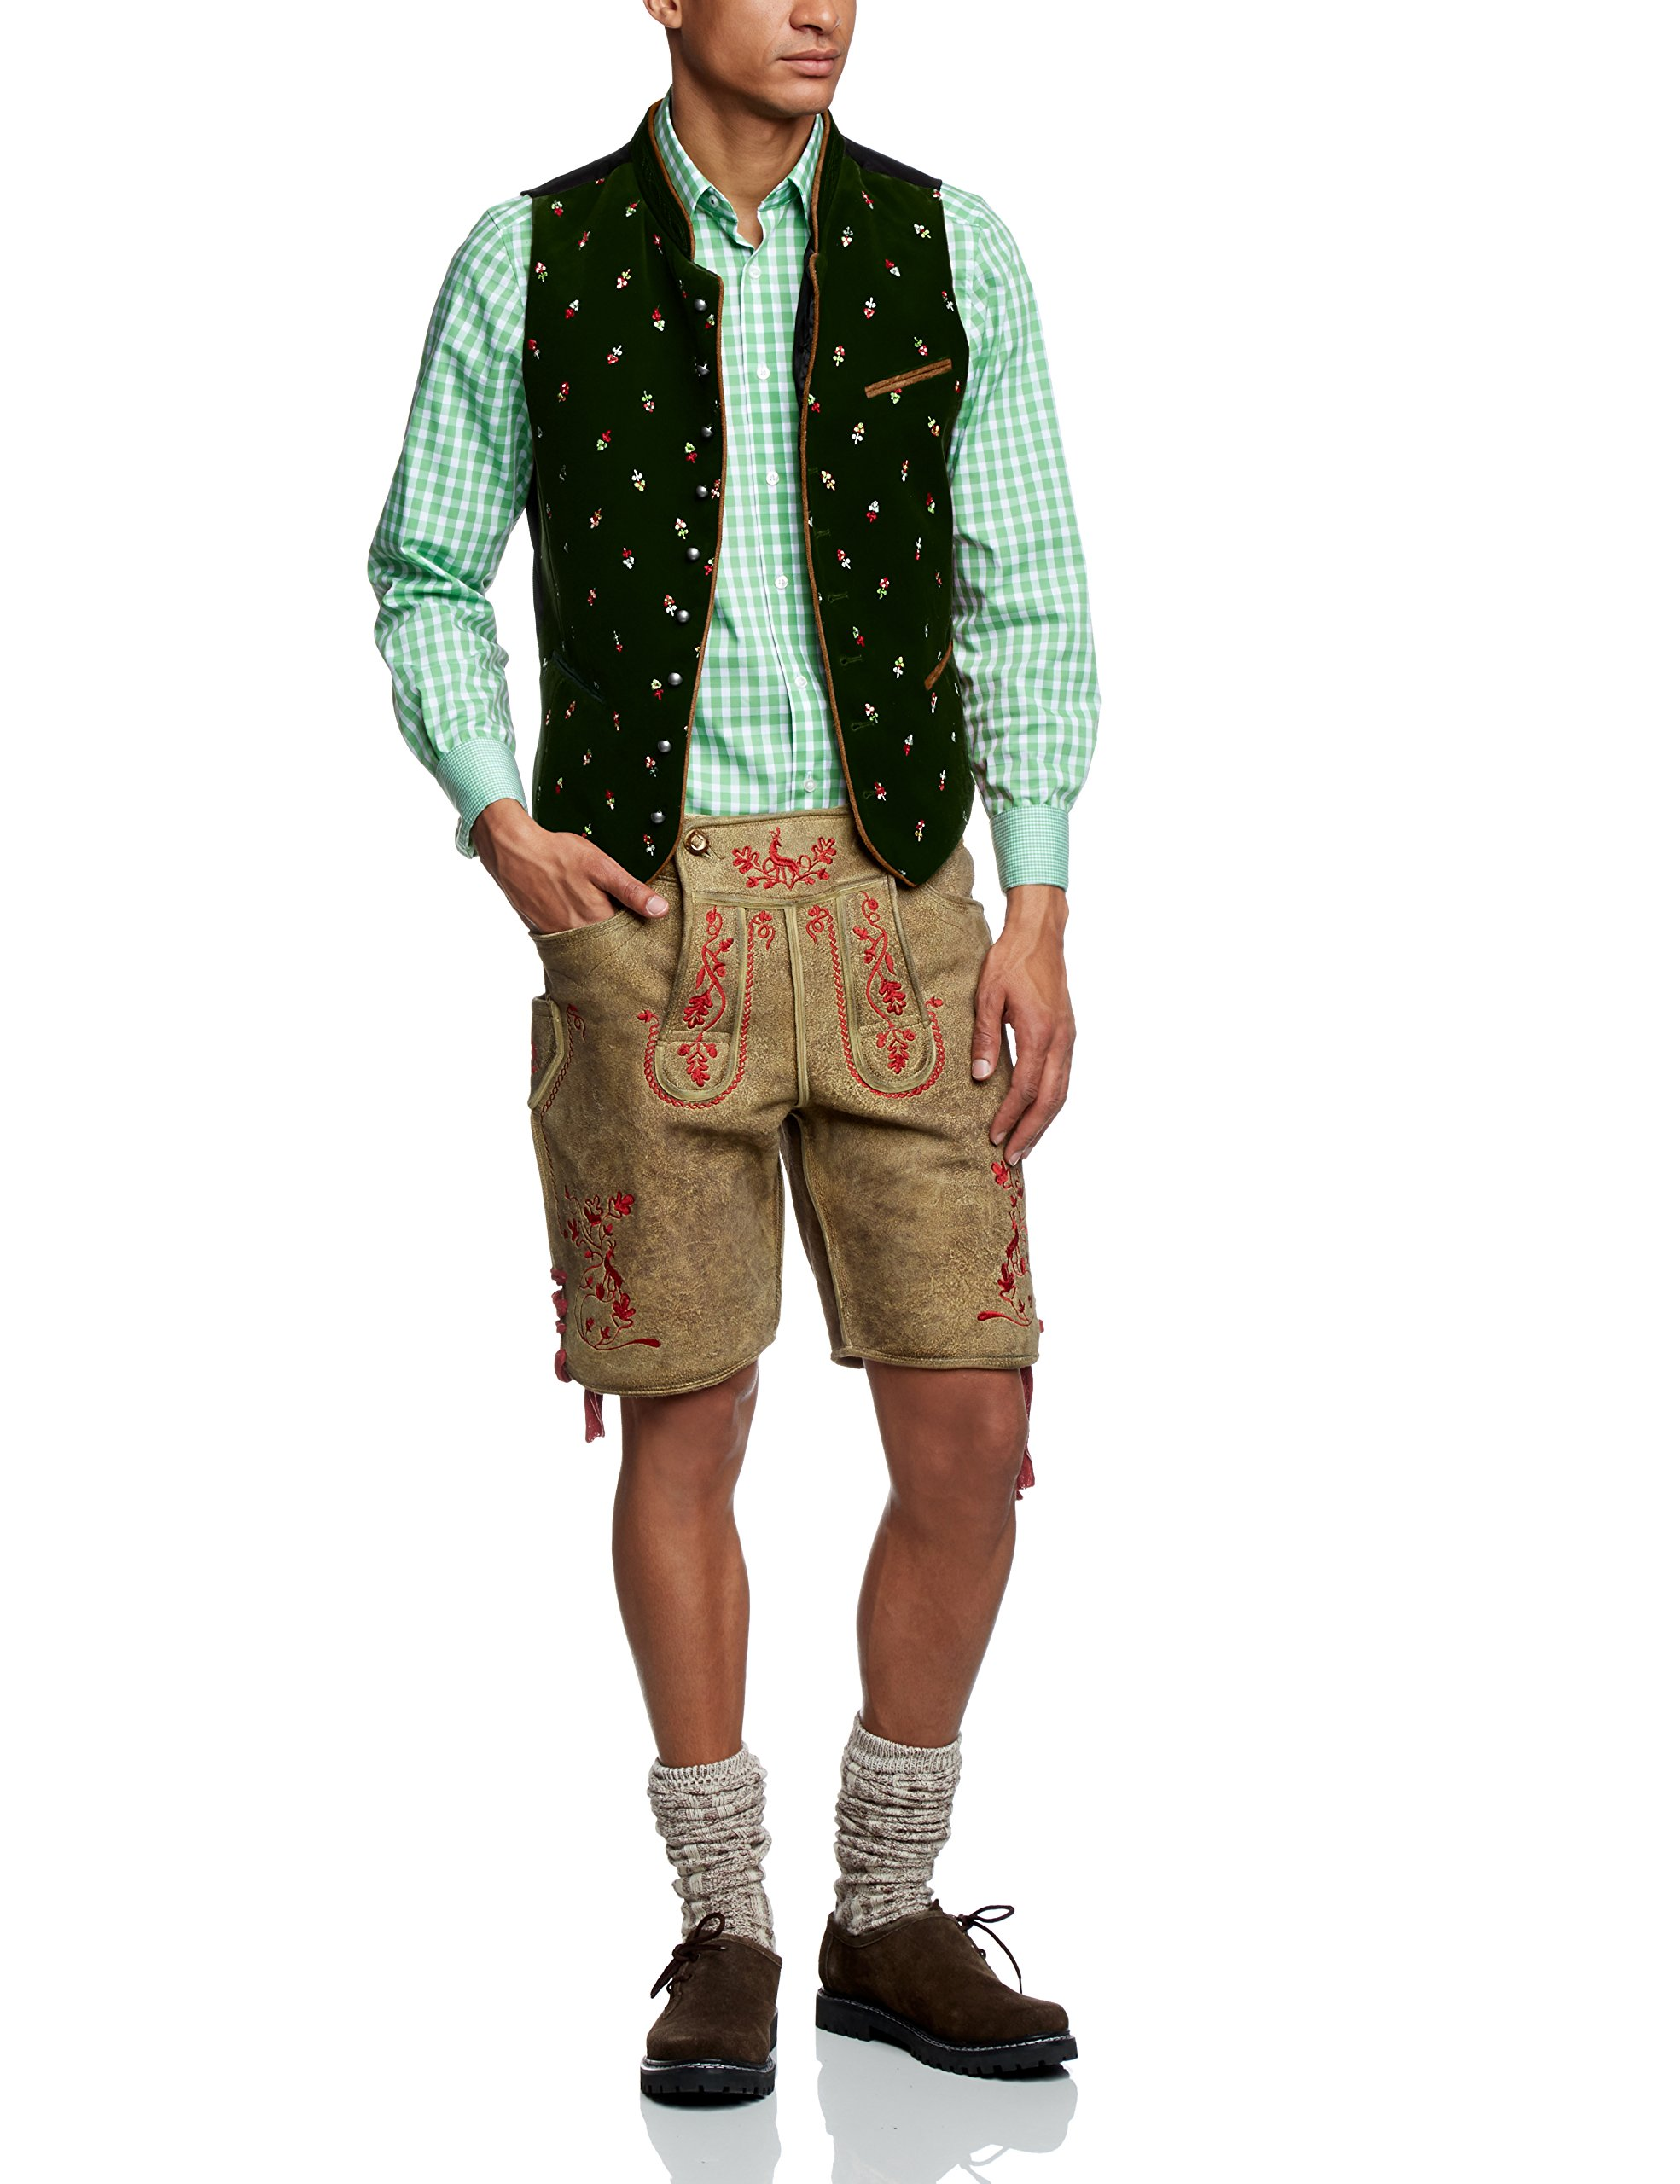 Acquises Allemand StockerpointCalzado HommeVerttanne58taille Costume Traditionnel Fabricant58 FJTlK1c